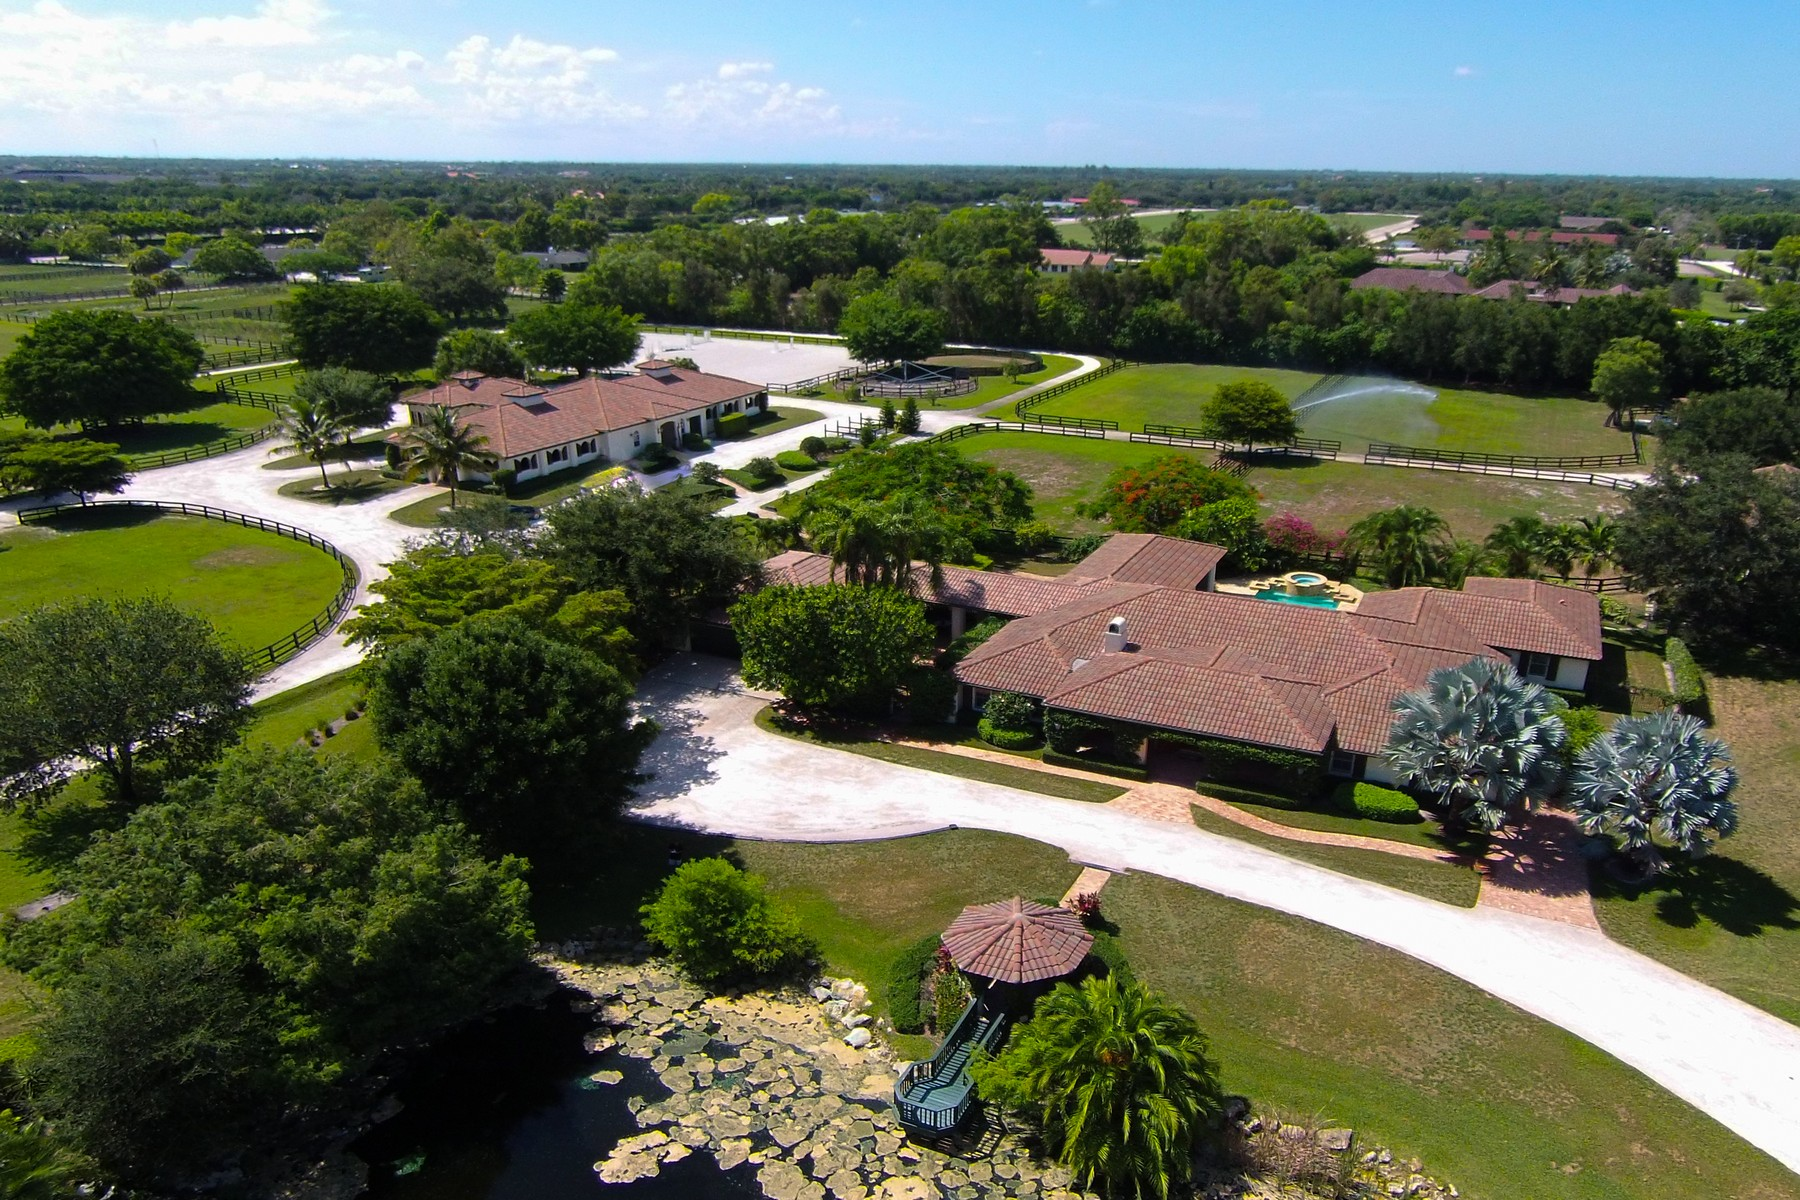 Fattoria / ranch / campagna per Vendita alle ore Steeplechase Farm 13281 52nd Place S, Wellington, Florida, 33414 Stati Uniti